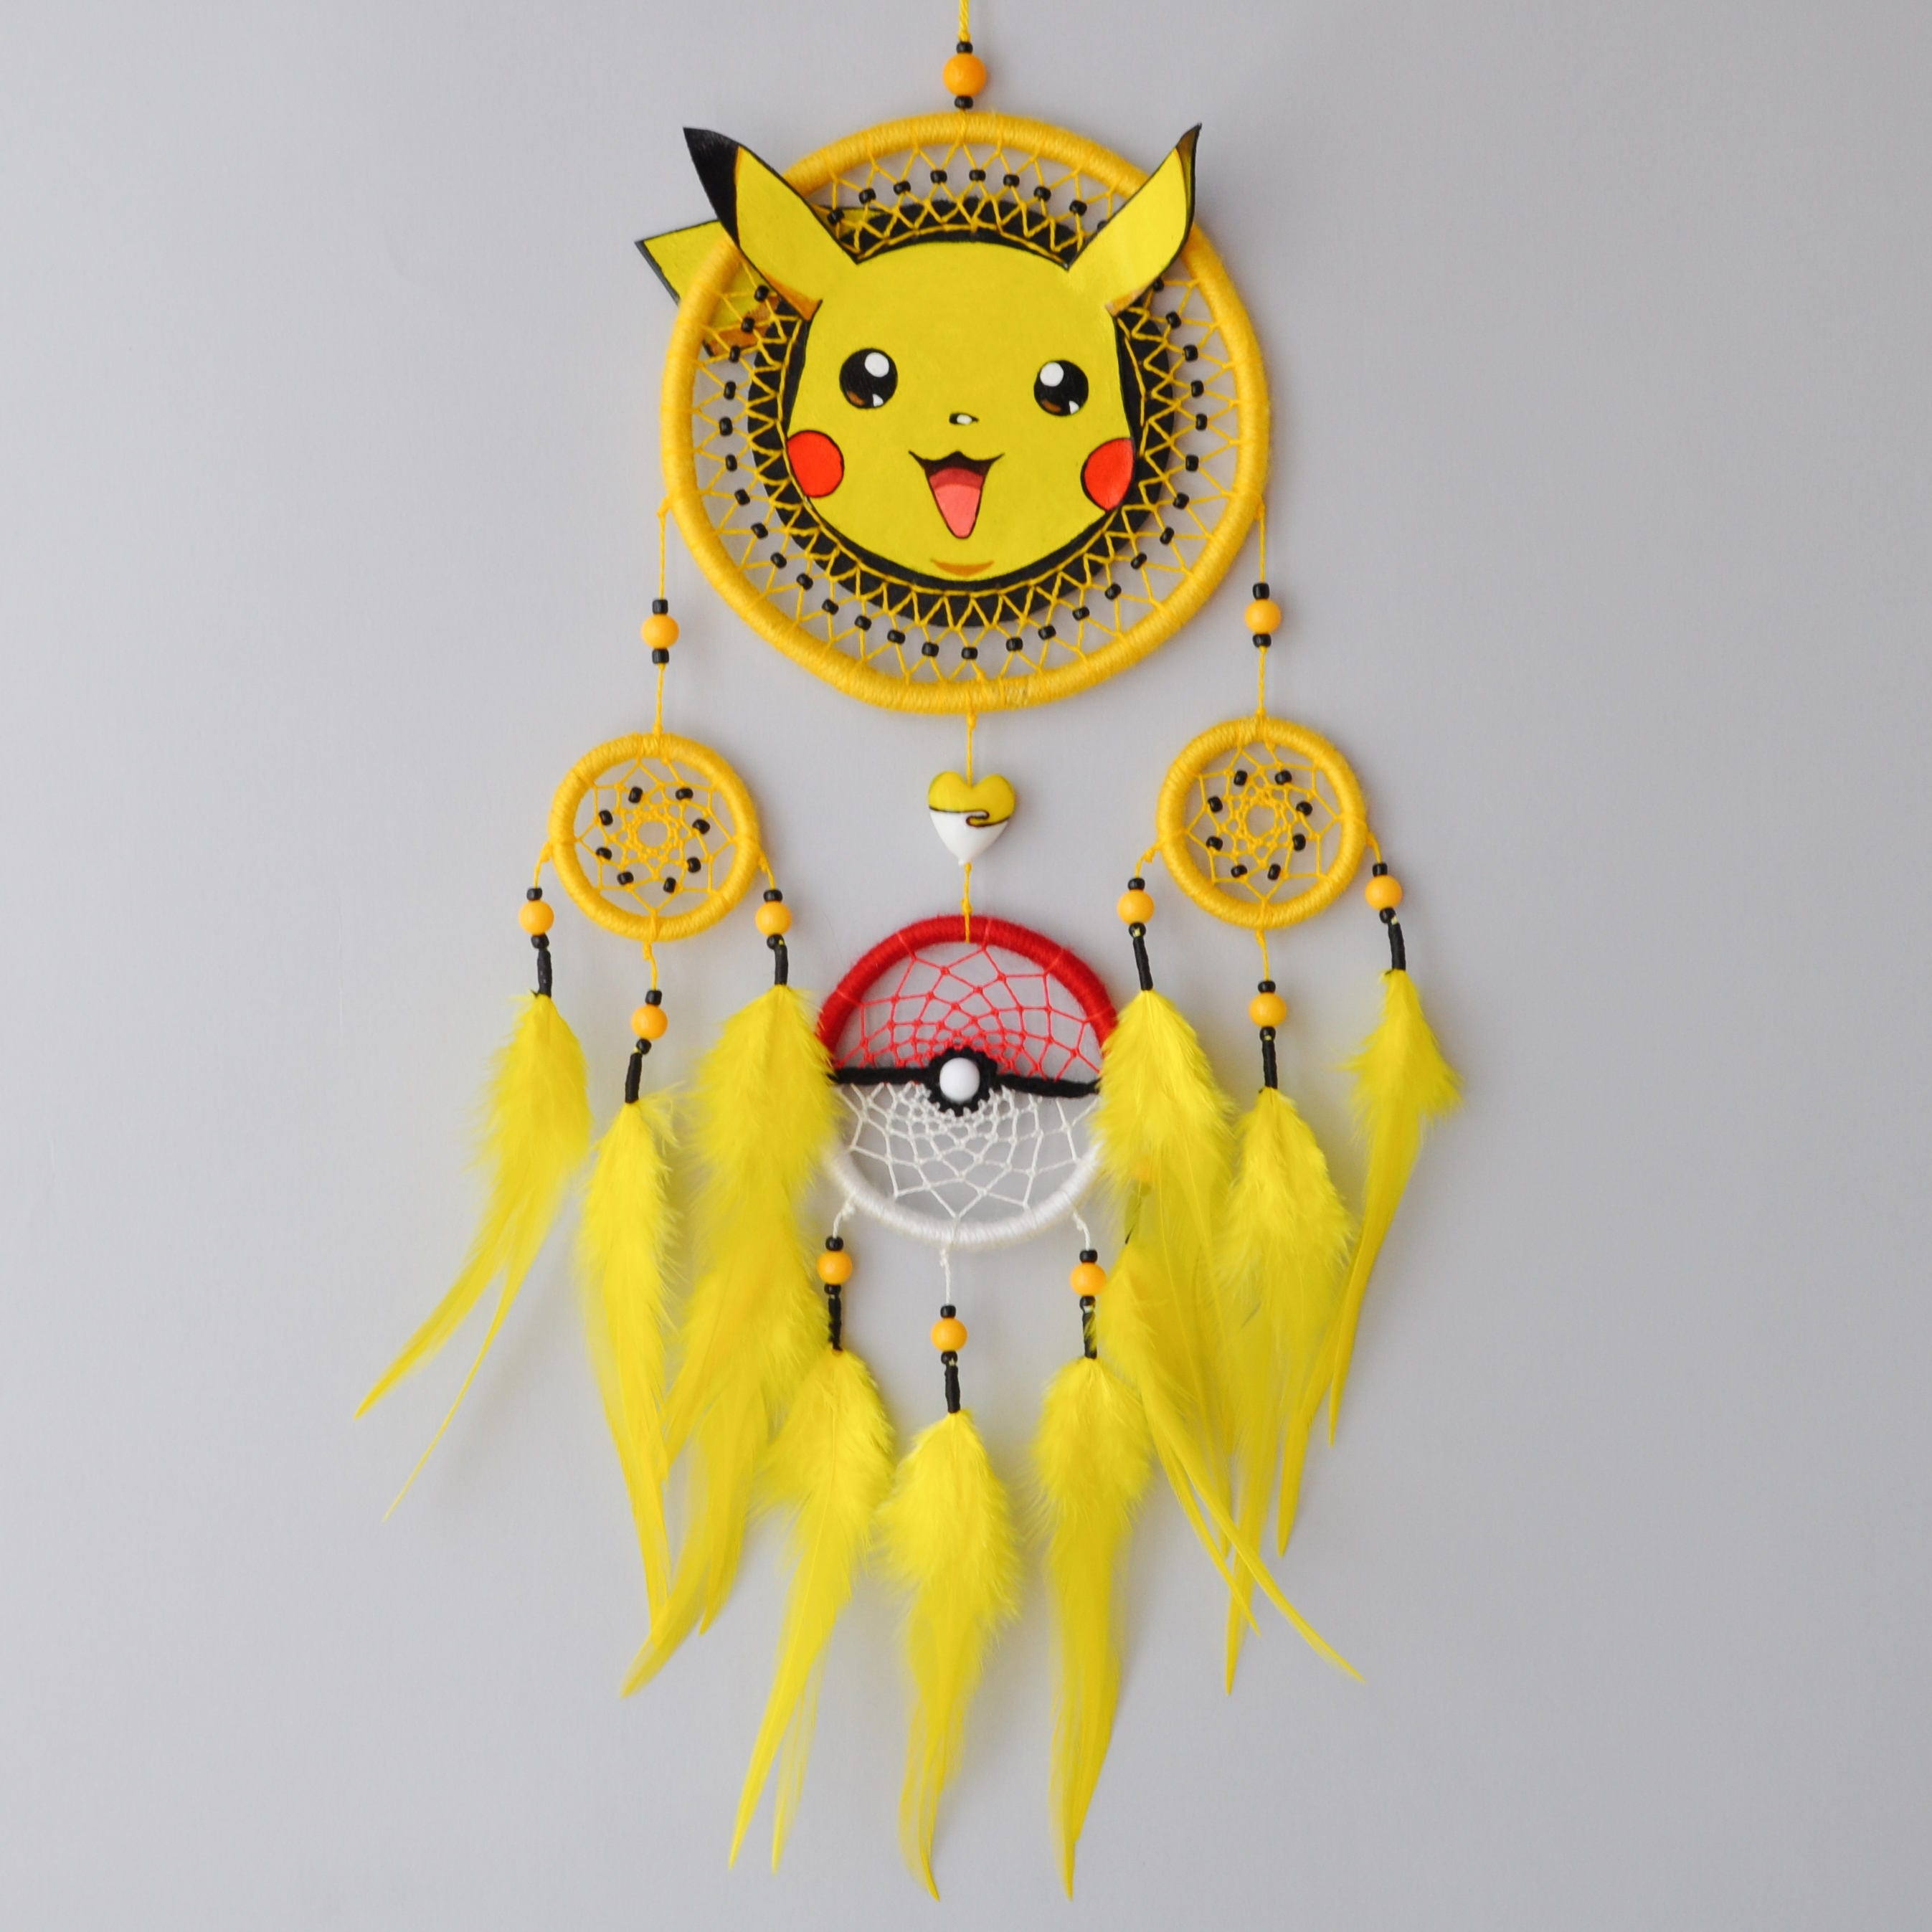 Pikachu Decor - Pokemon Fan Gift - Dream Catcher Wall Hanging ...